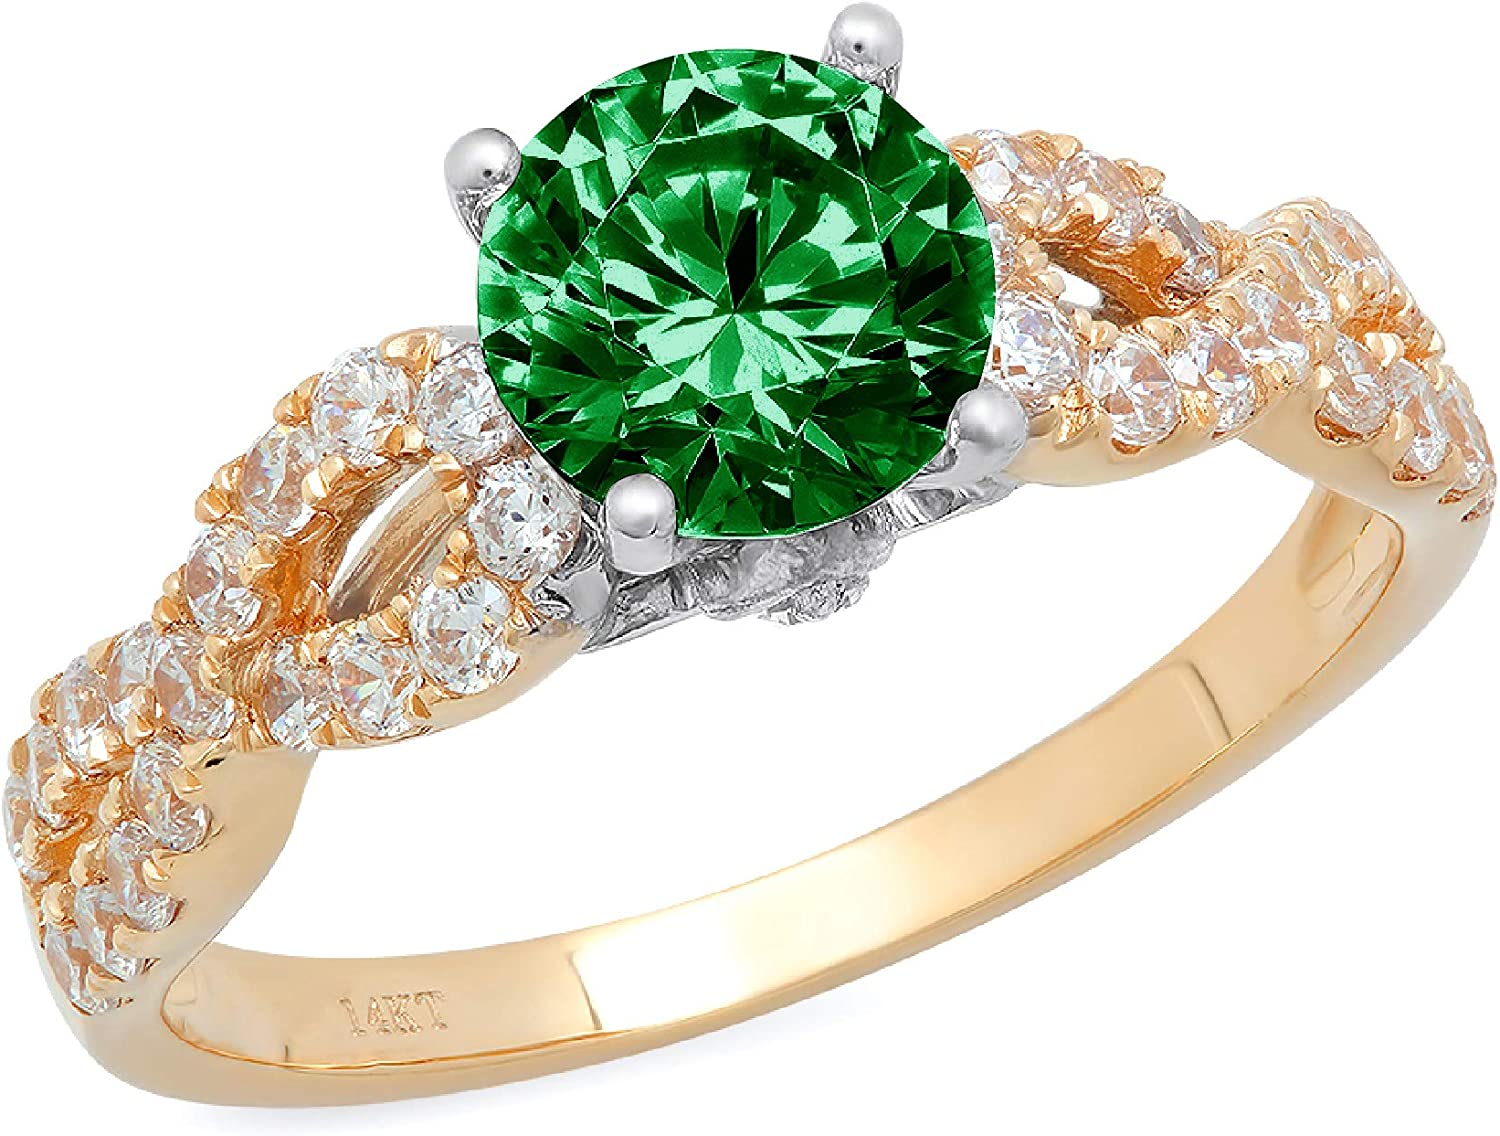 1.32ct Brilliant Round Cut Solitaire Low price Flawless Safety and trust Green CZ Simulated